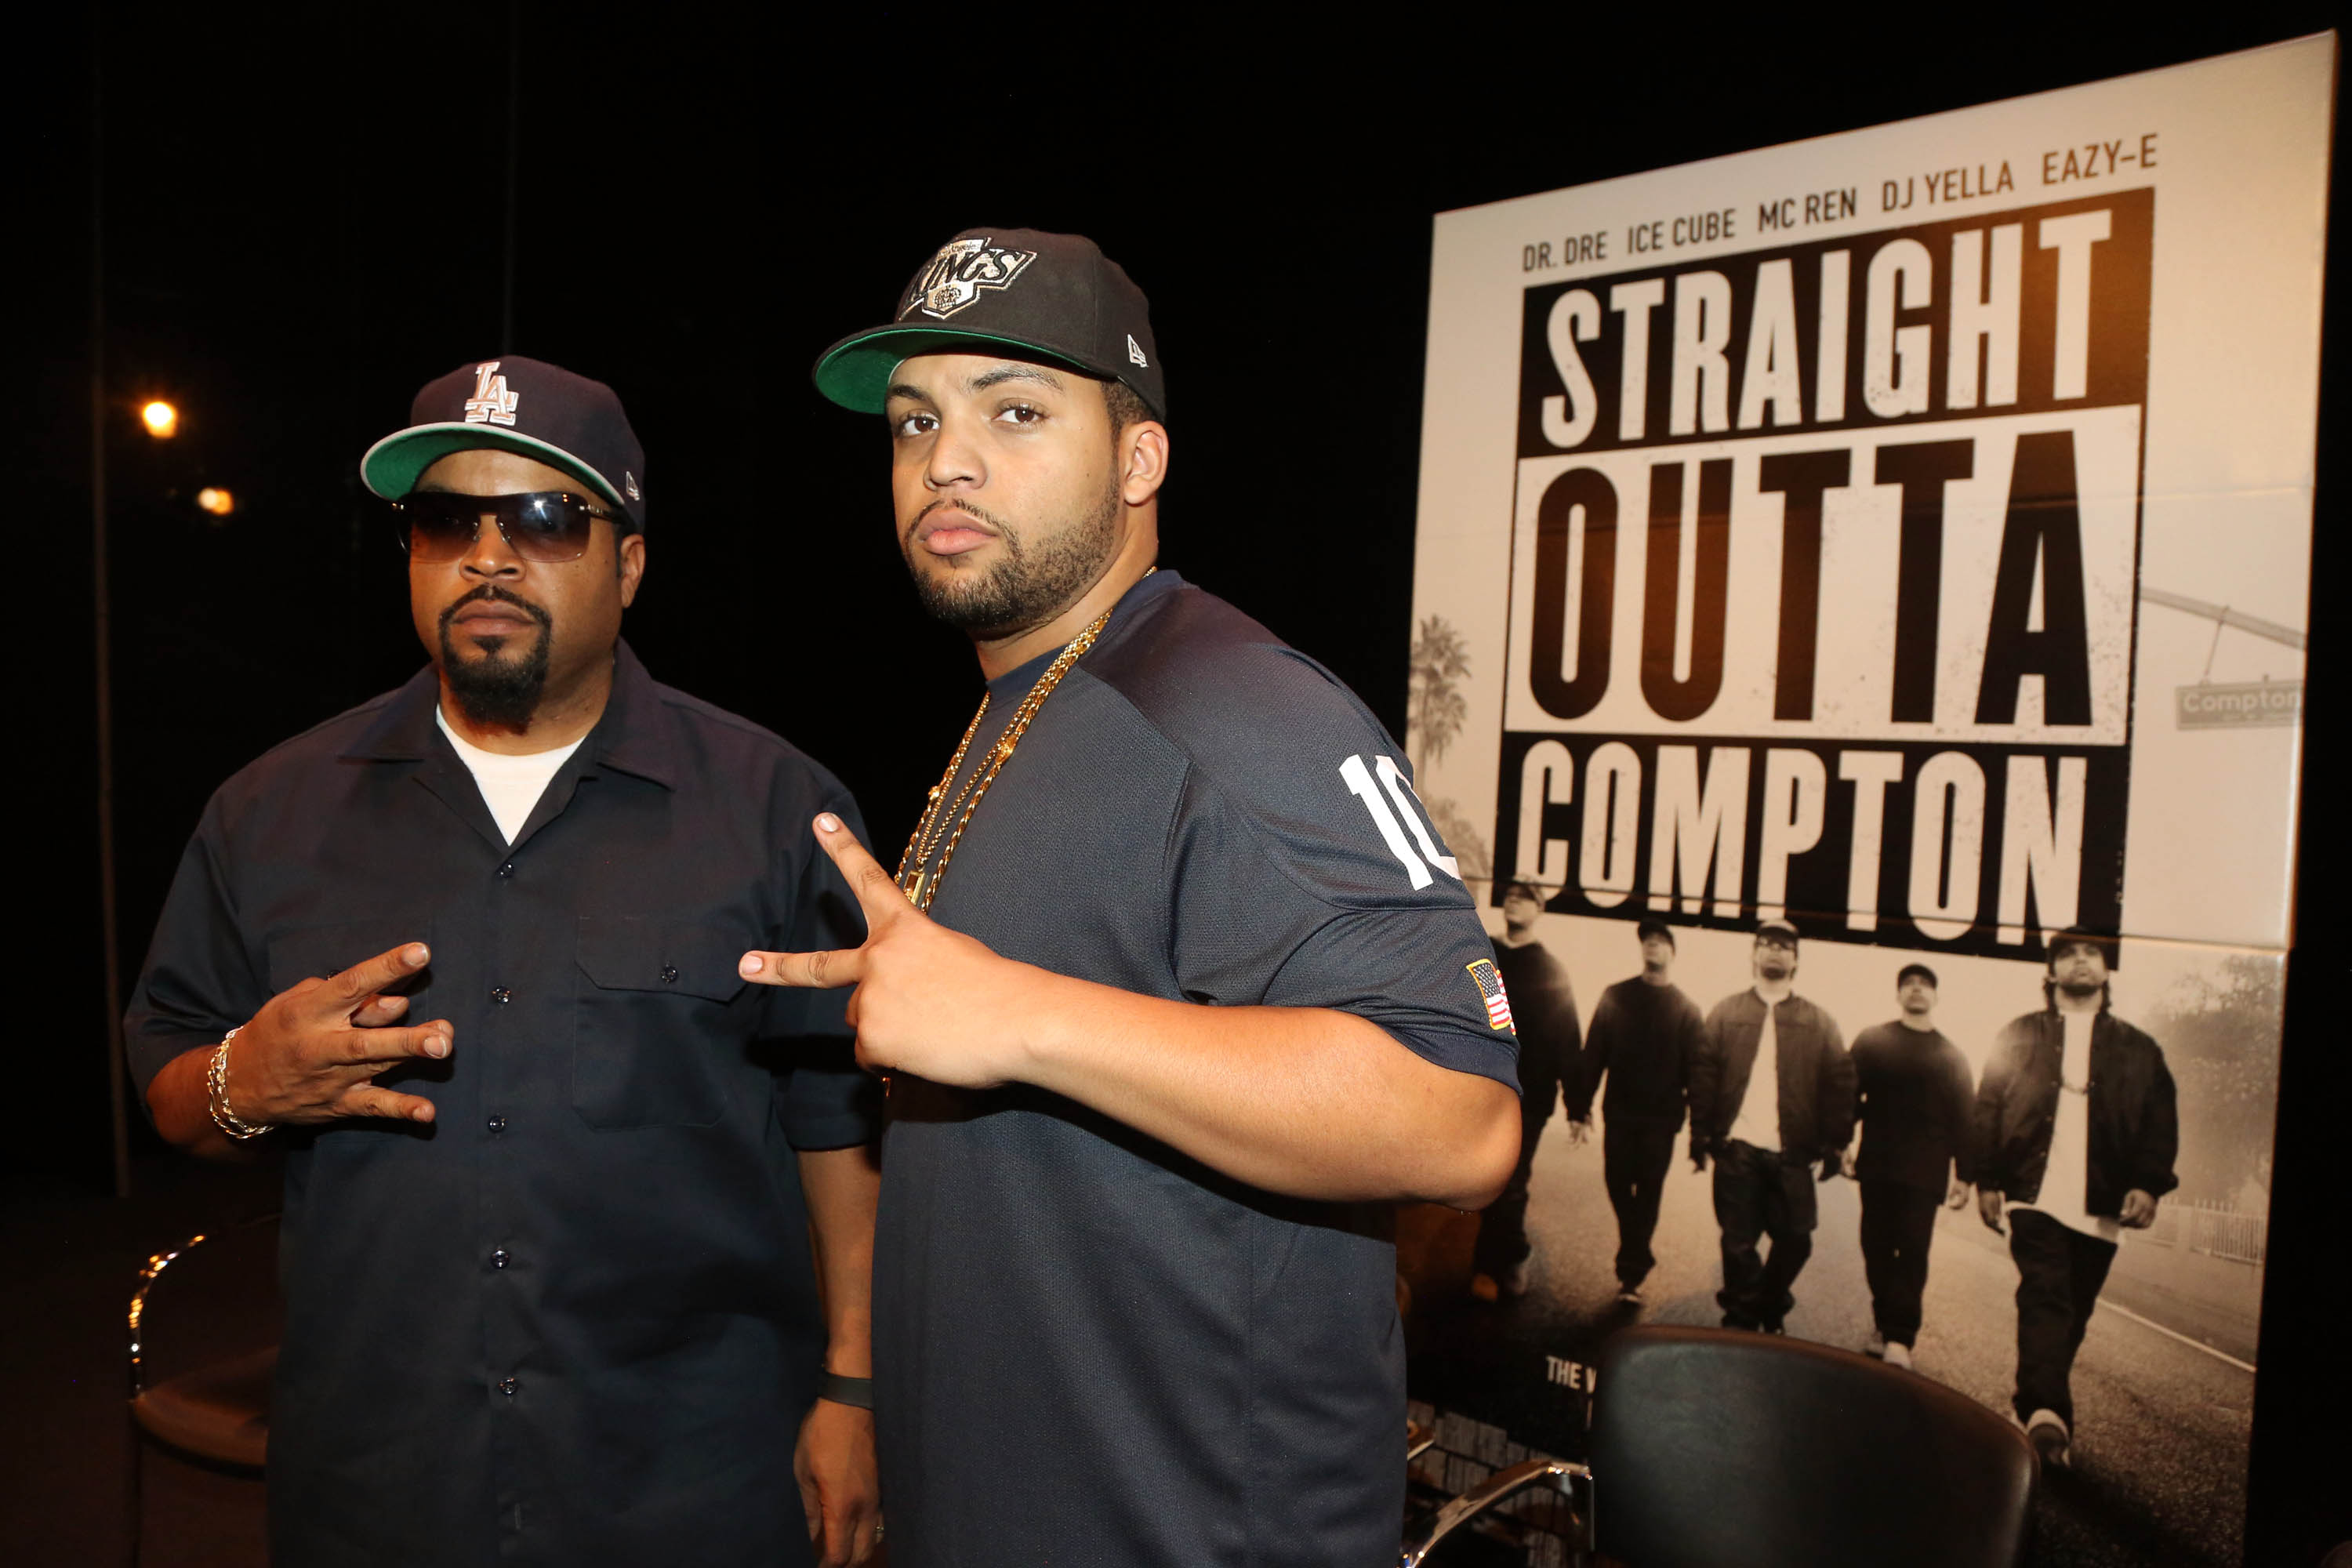 Ice Cube (left) and O'Shea Jackson Jr. attend the 'Straight Outta Compton' New York screening in New York City.